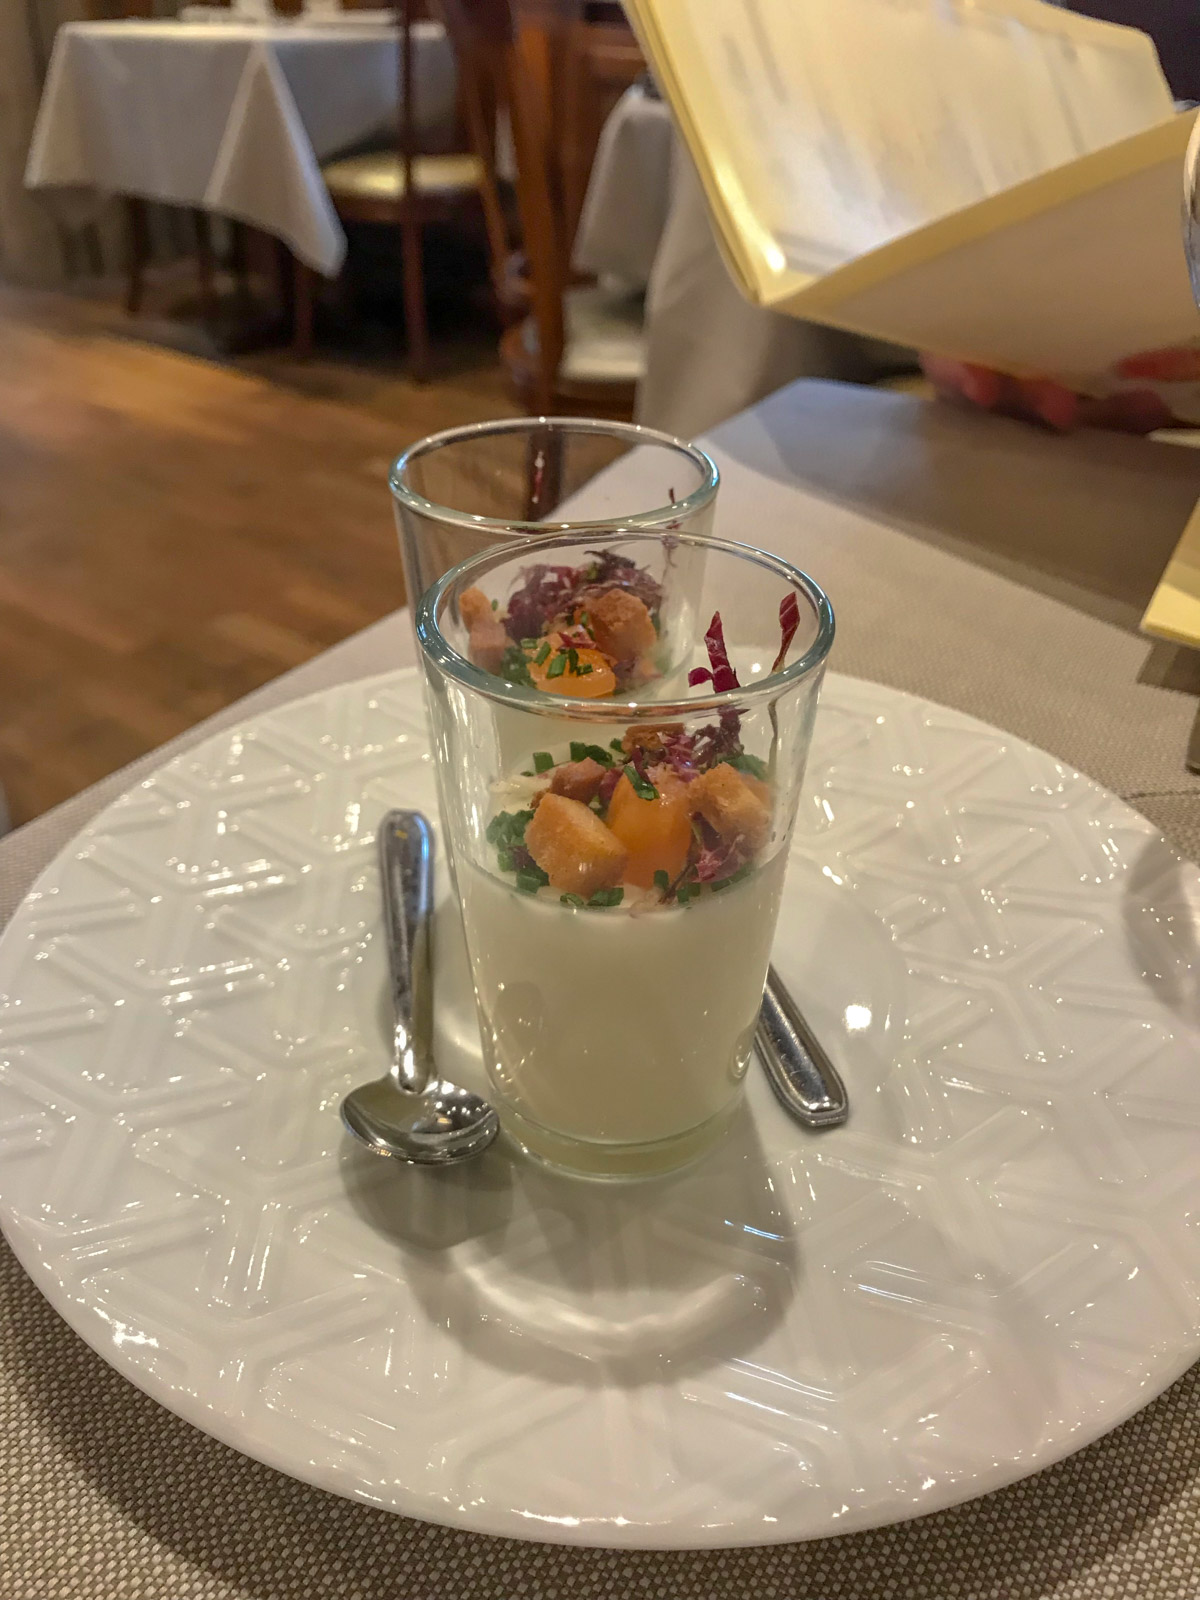 Two small glasses on a white plate, each with a small amount of white pudding and topped with raw salmon and croutons